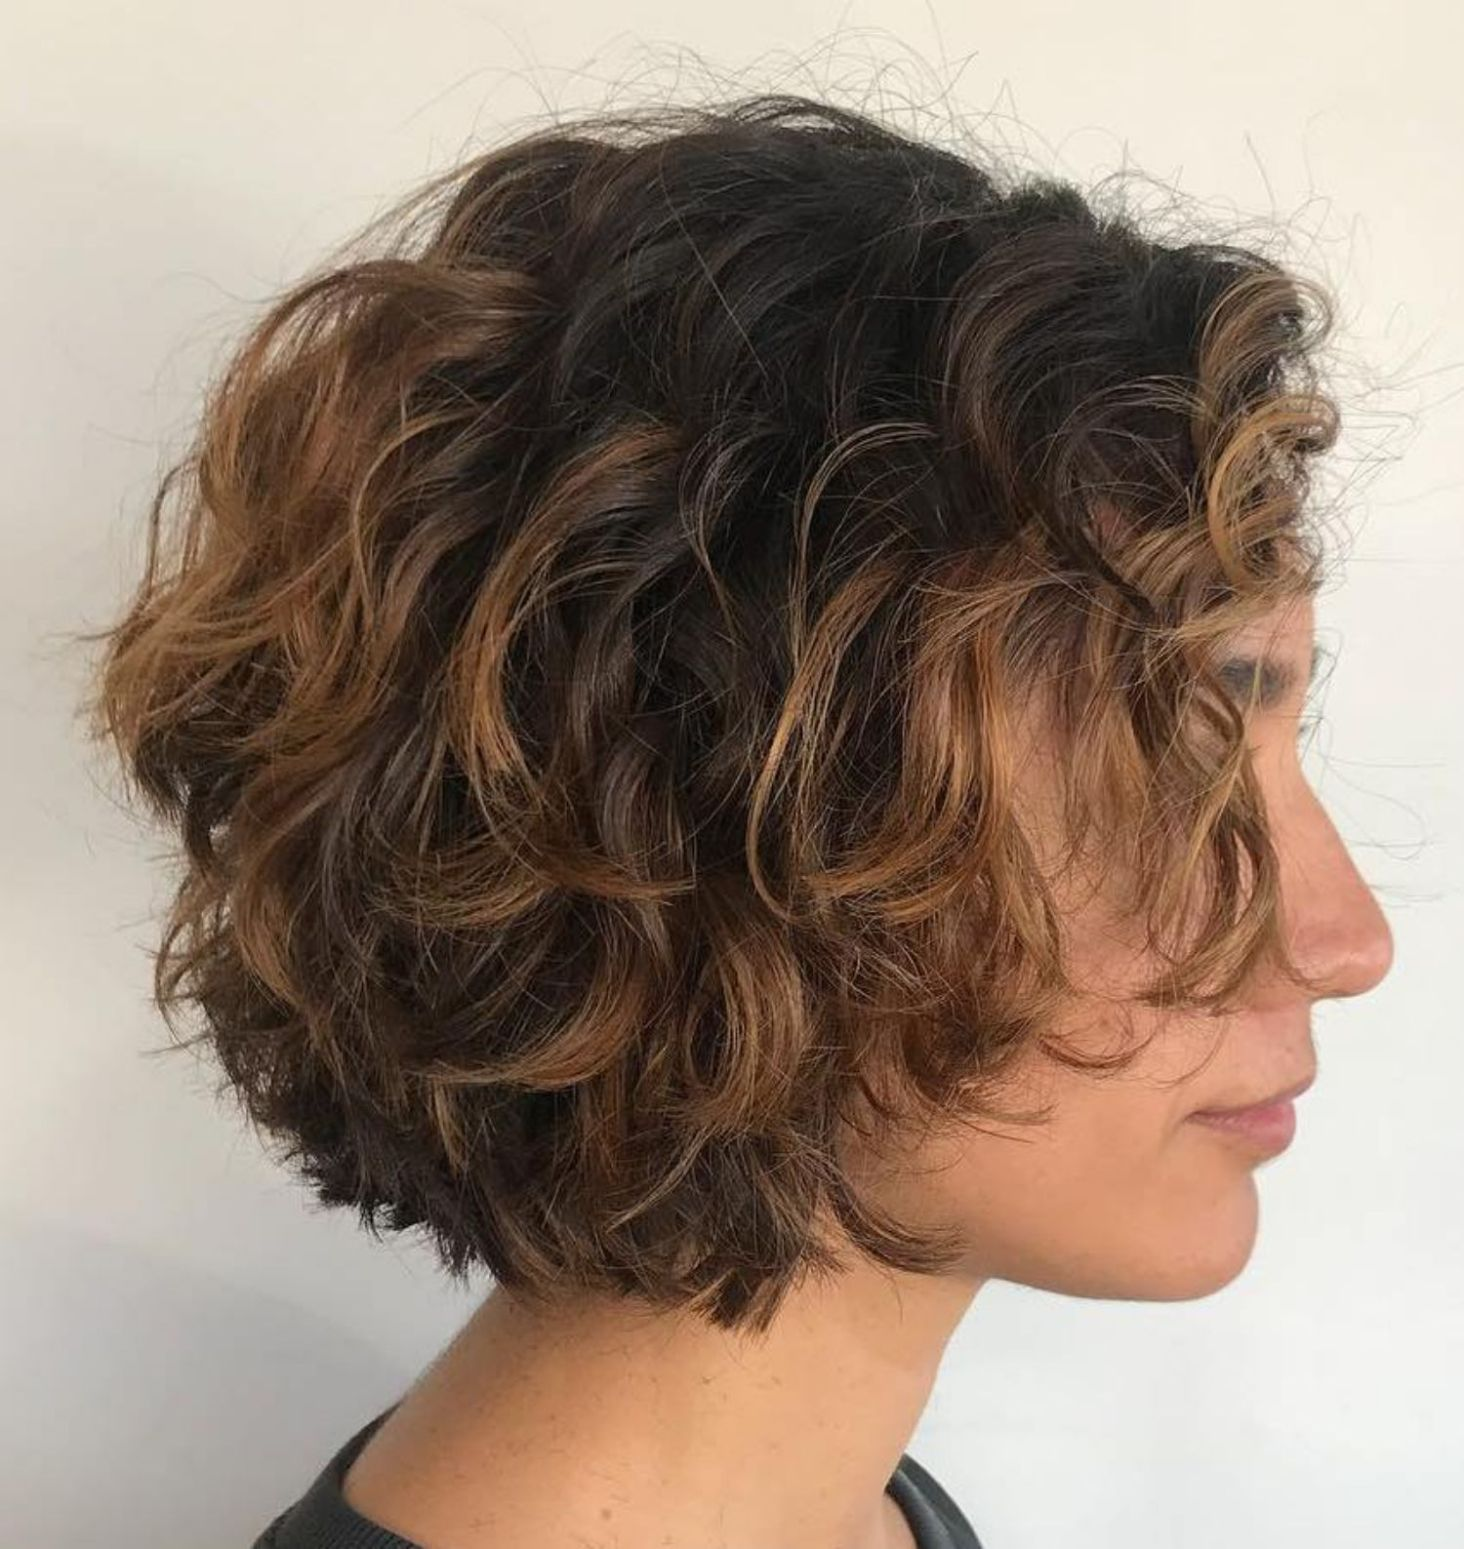 65 Different Versions Of Curly Bob Hairstyle Short Wavy Hair Short Layered Curly Hair Hair Styles